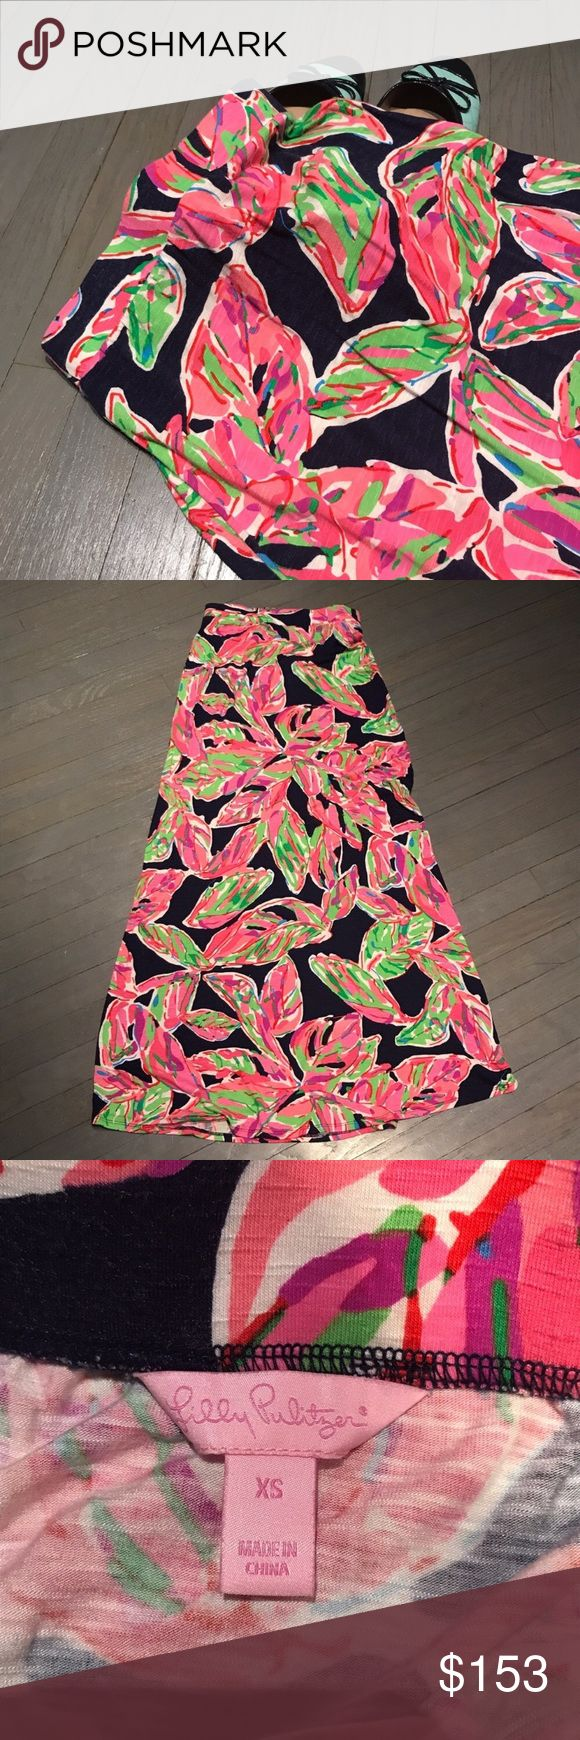 Lilly Pulitzer In the Vias Marine blue maxi skirt Lilly Pulitzer In the Vias Marine navy blue pink green maxi skirt. Never altered. Can be worn as mid length strapless dress Lilly Pulitzer Skirts Maxi